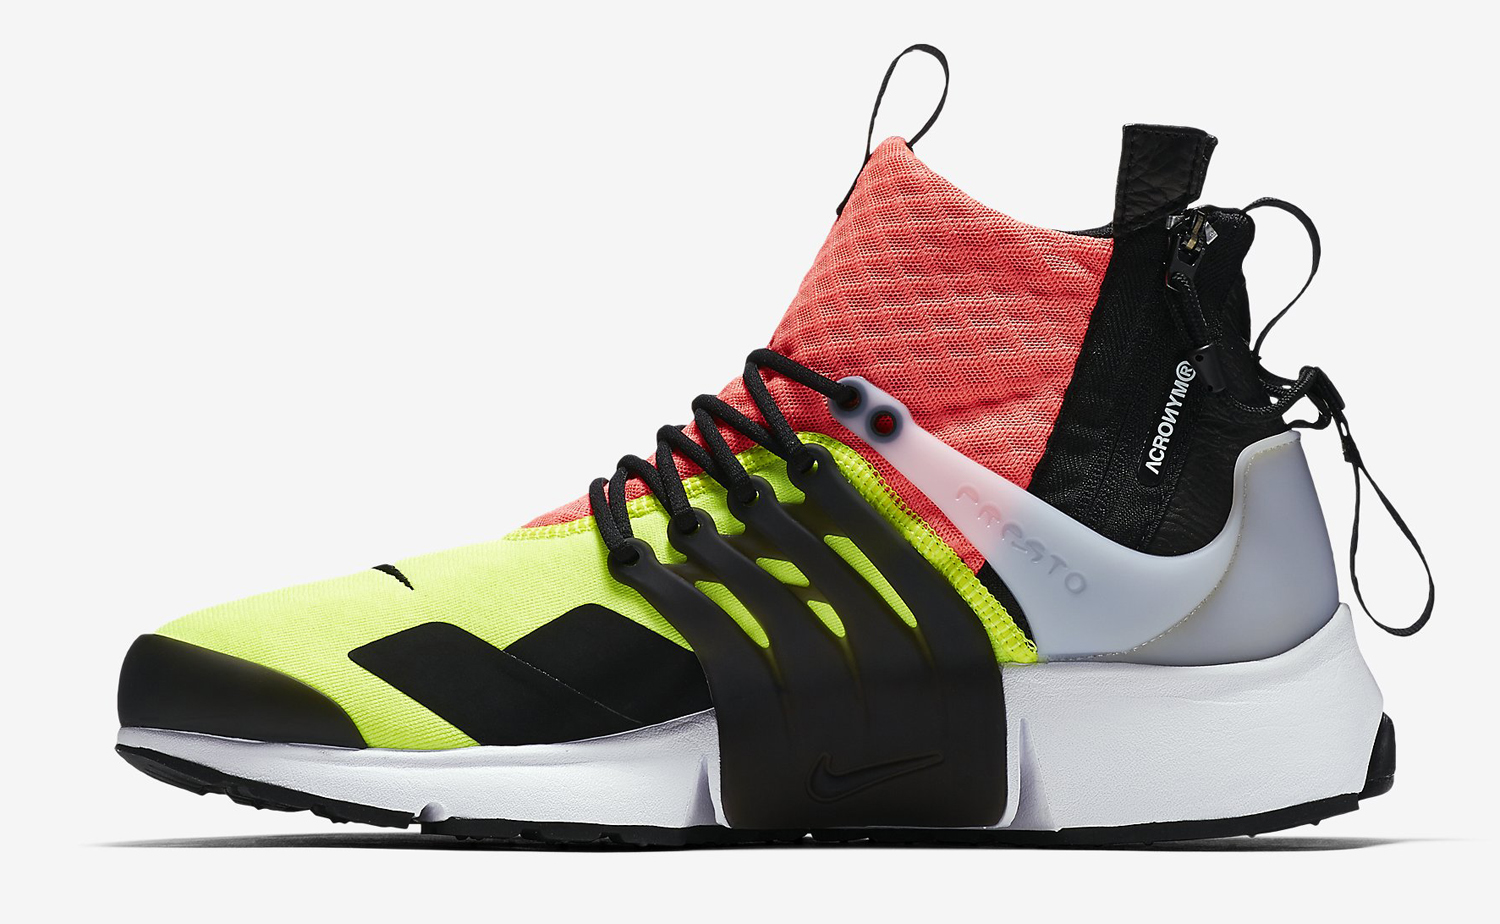 Acronym Nike Air Presto Hot Lava 844672-100 Medial